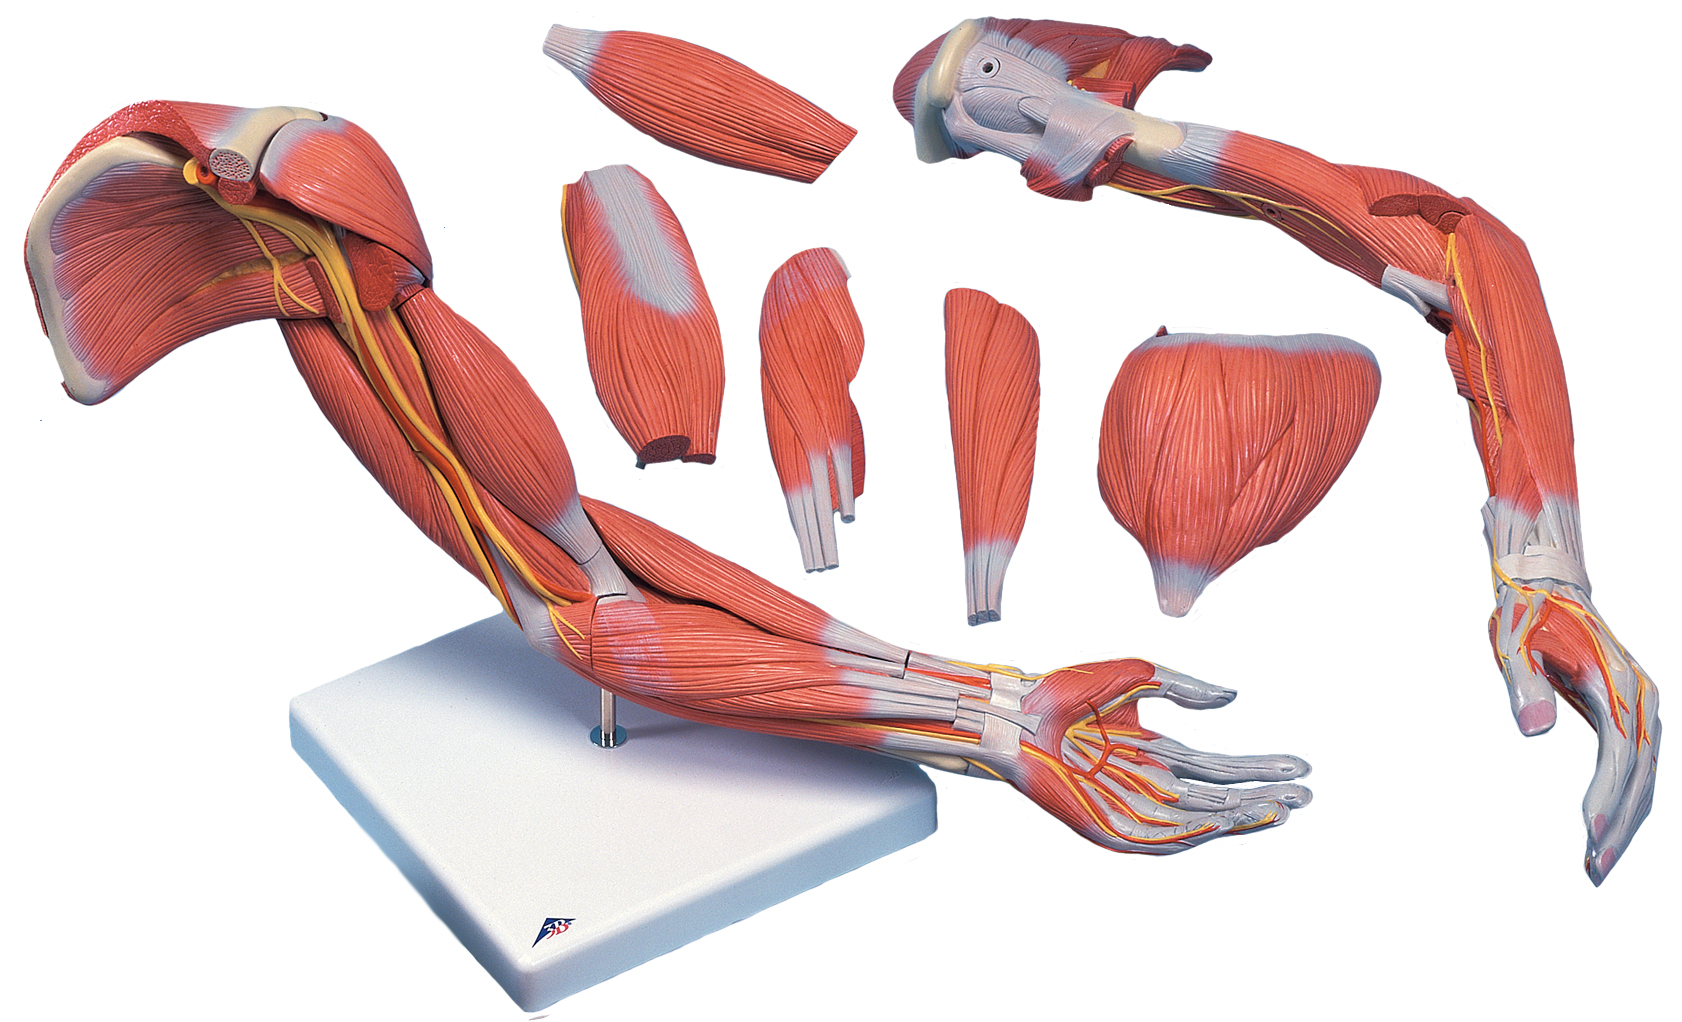 Human Arm Models With Muscles